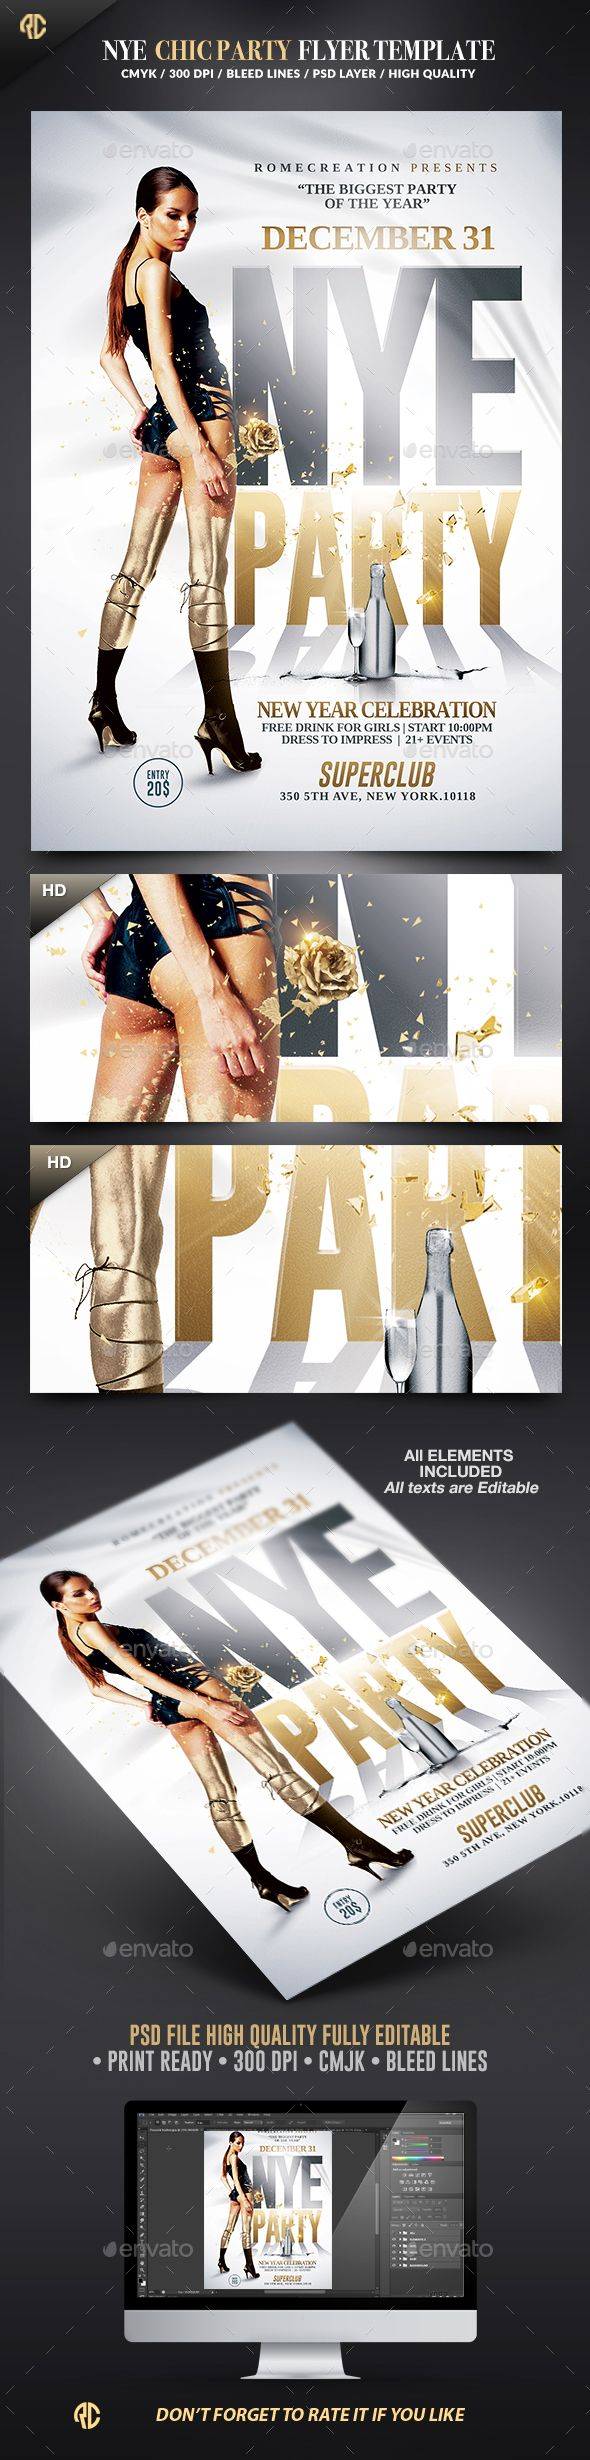 New Year Chic Party Flyer Template PSD #design #nye Download…